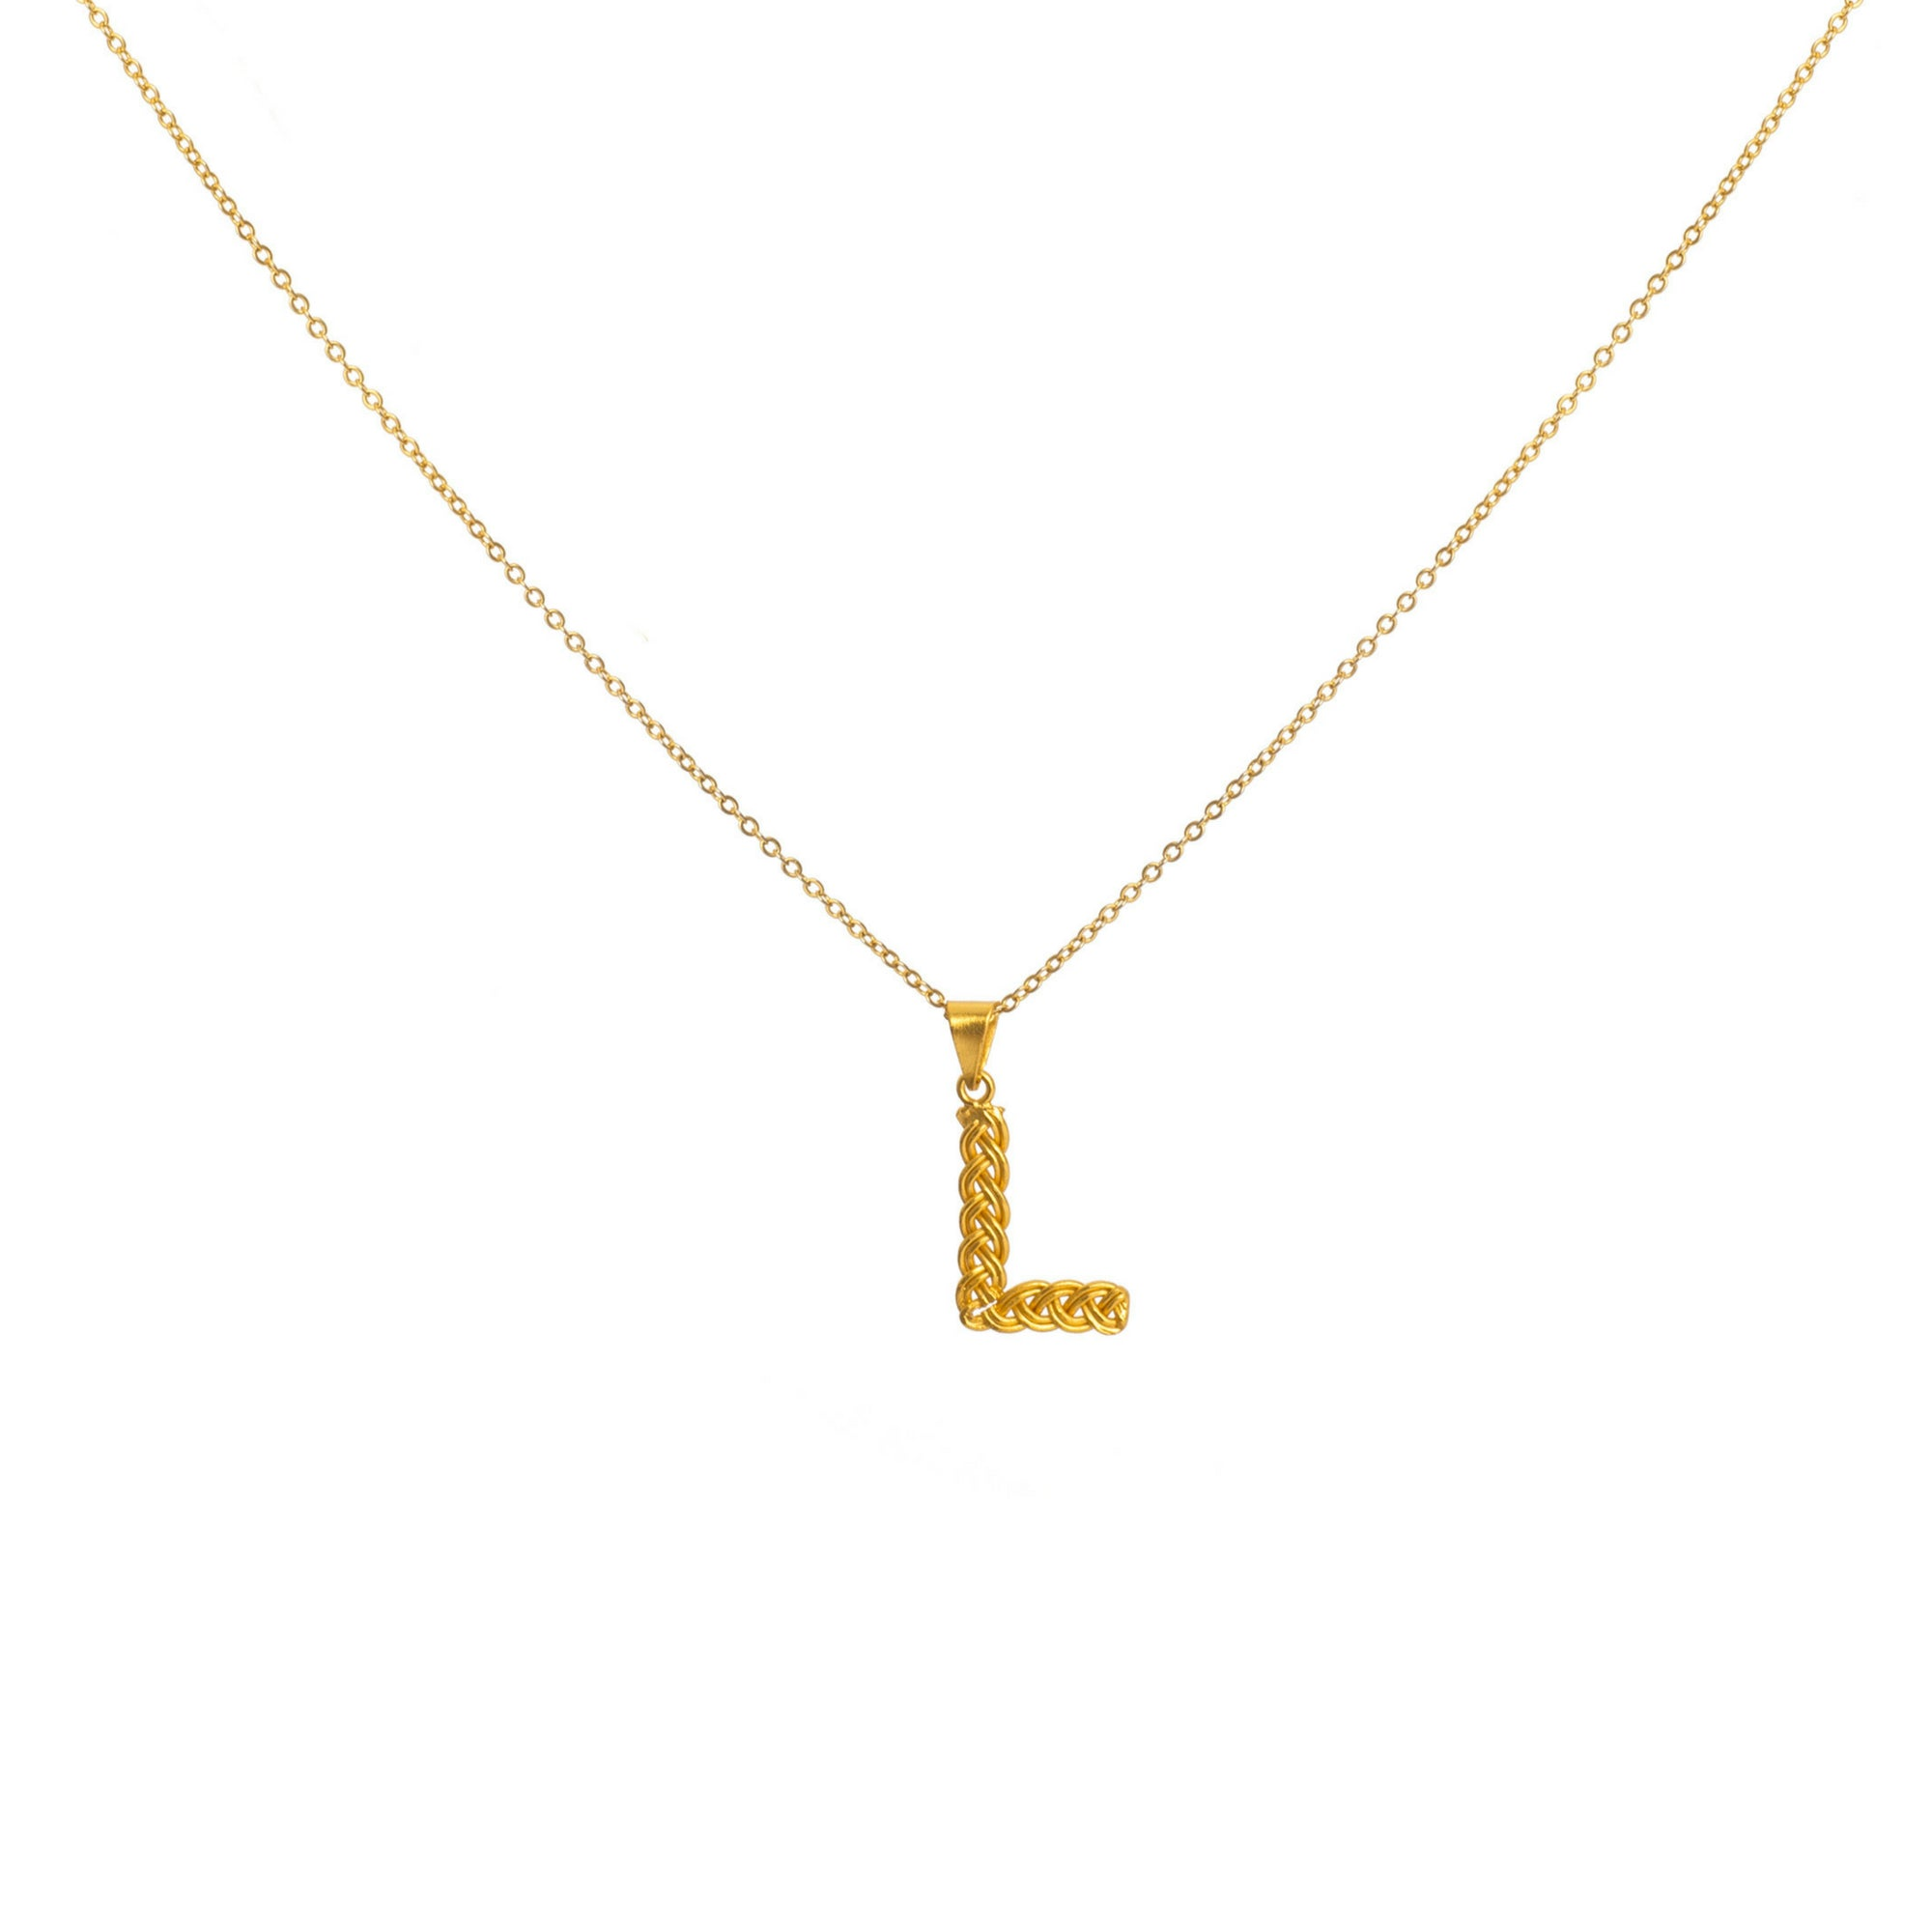 Liza Echeverry Jewelry Colombia Initials Necklace Gold